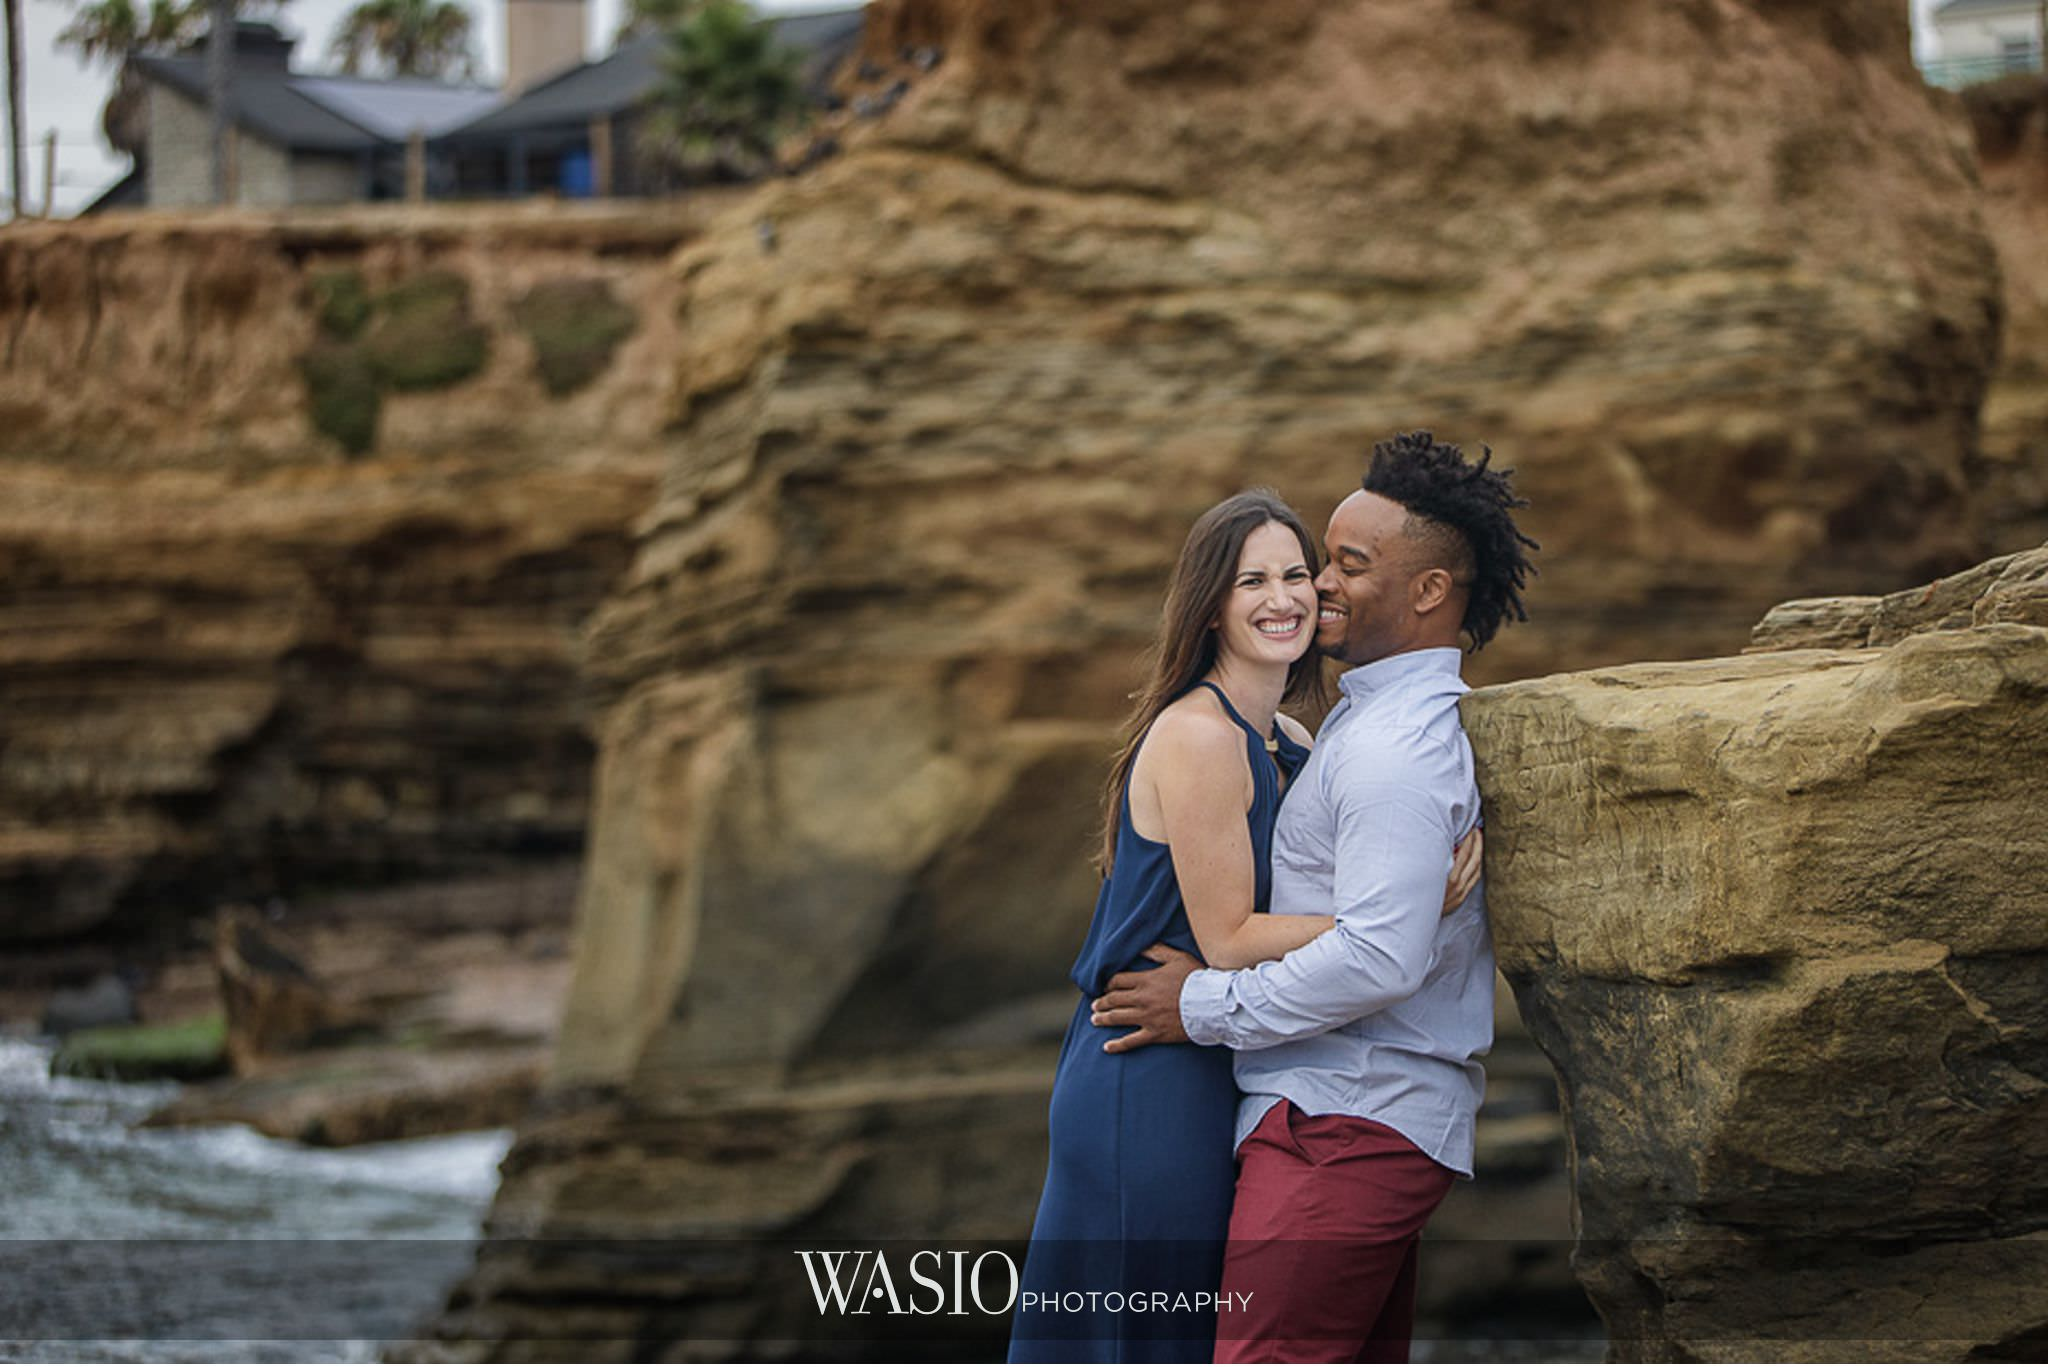 Sunset-Cliffs-San-Diego-Engagement-photography-69 Sunset Cliffs San Diego Engagement - Laura and La Broi